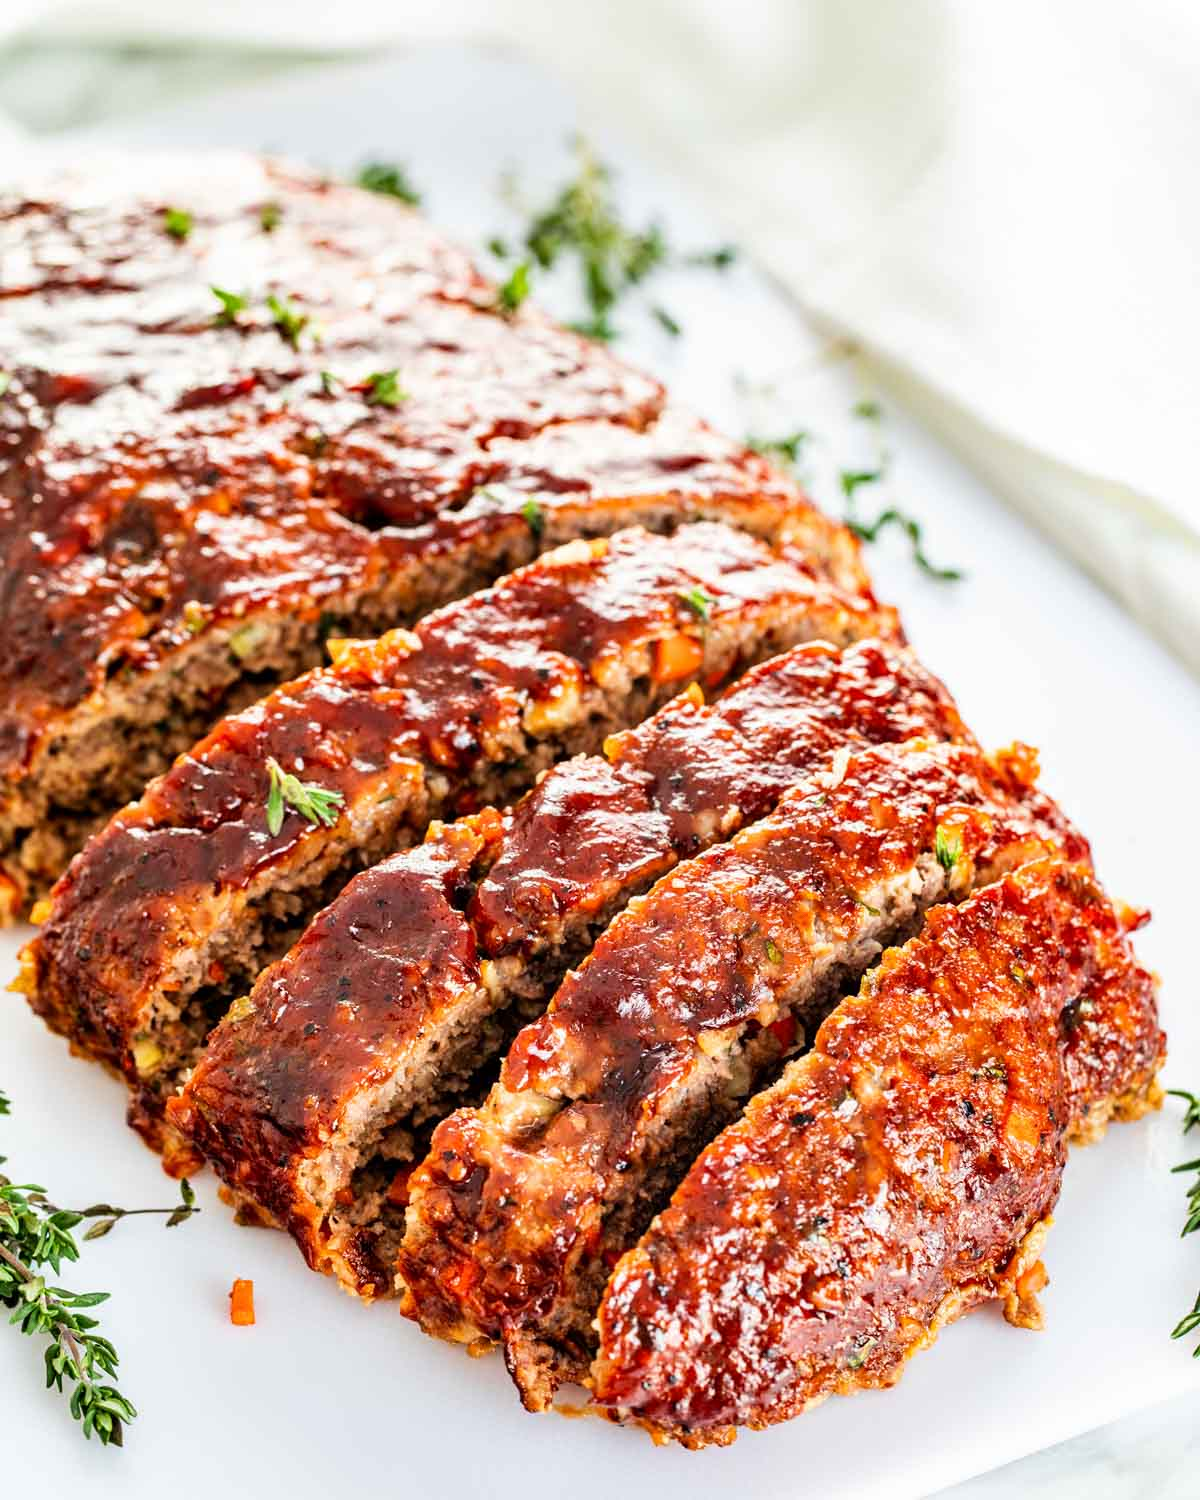 meatloaf sliced on a white cutting board.